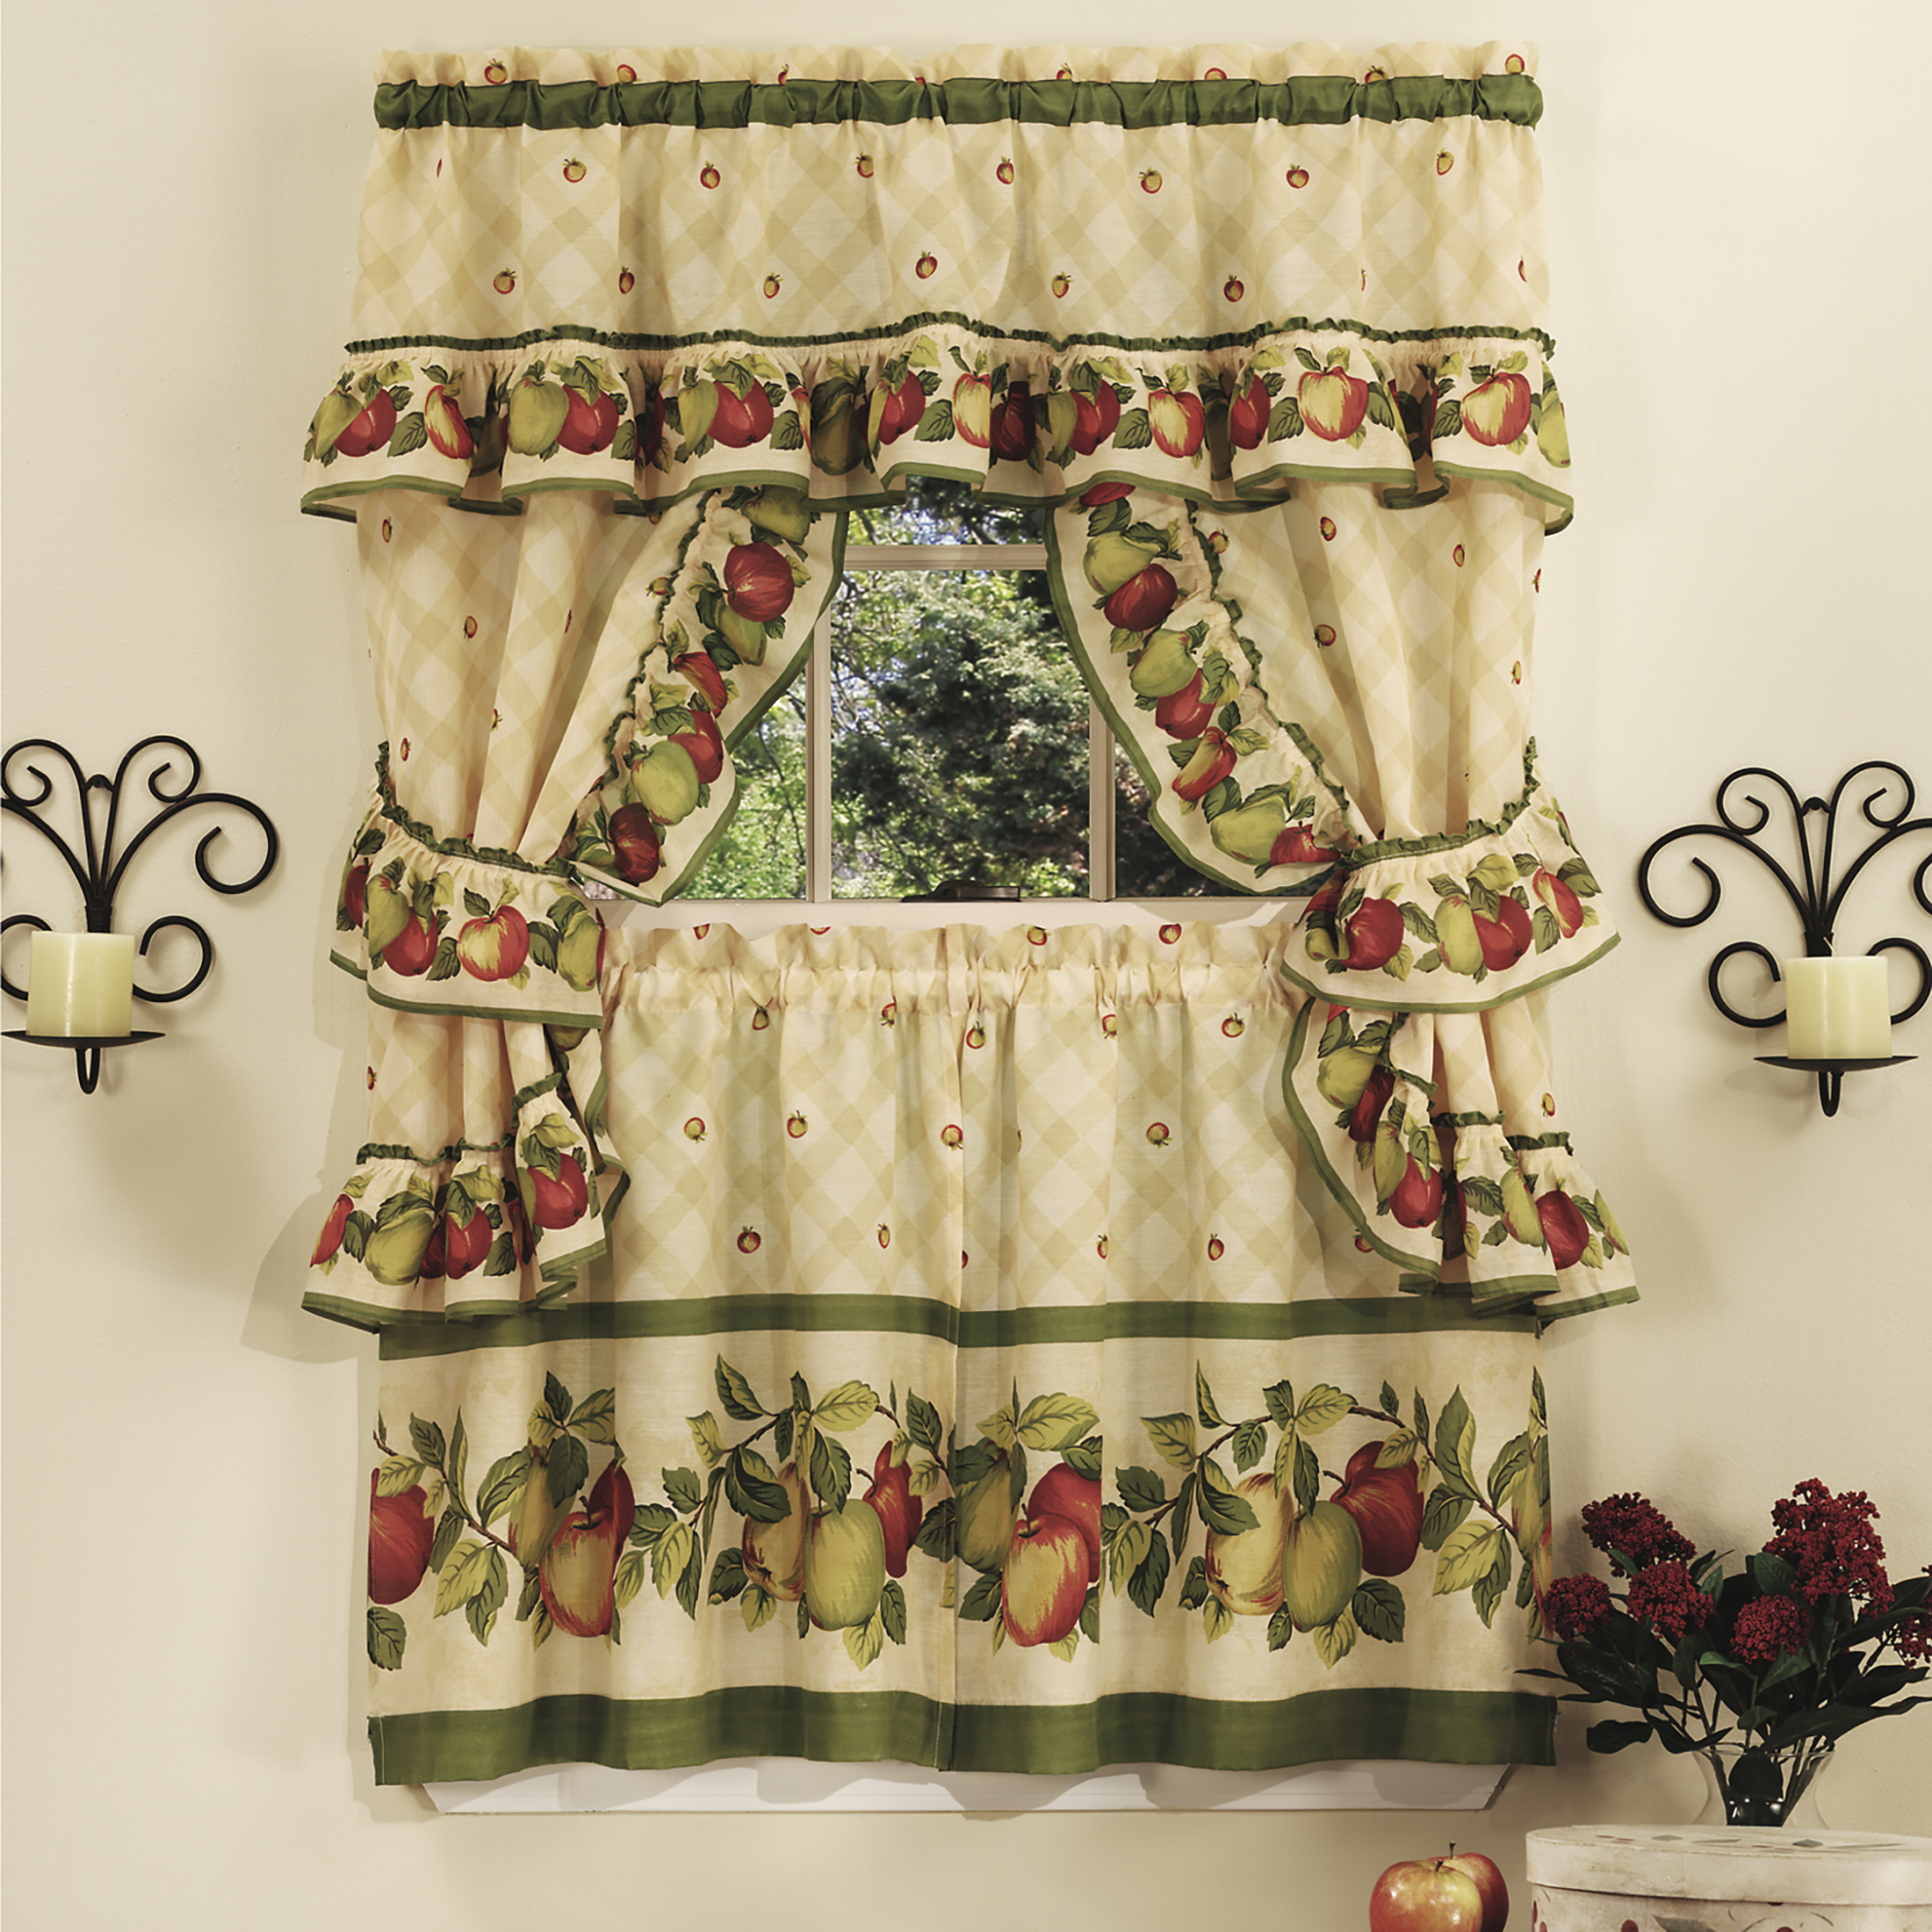 Details About 5Pc Window Kitchen Curtain Cottage Set, Apple Vines, Tiers,  Valance, Tiebacks Within 2020 Cottage Ivy Curtain Tiers (View 10 of 20)